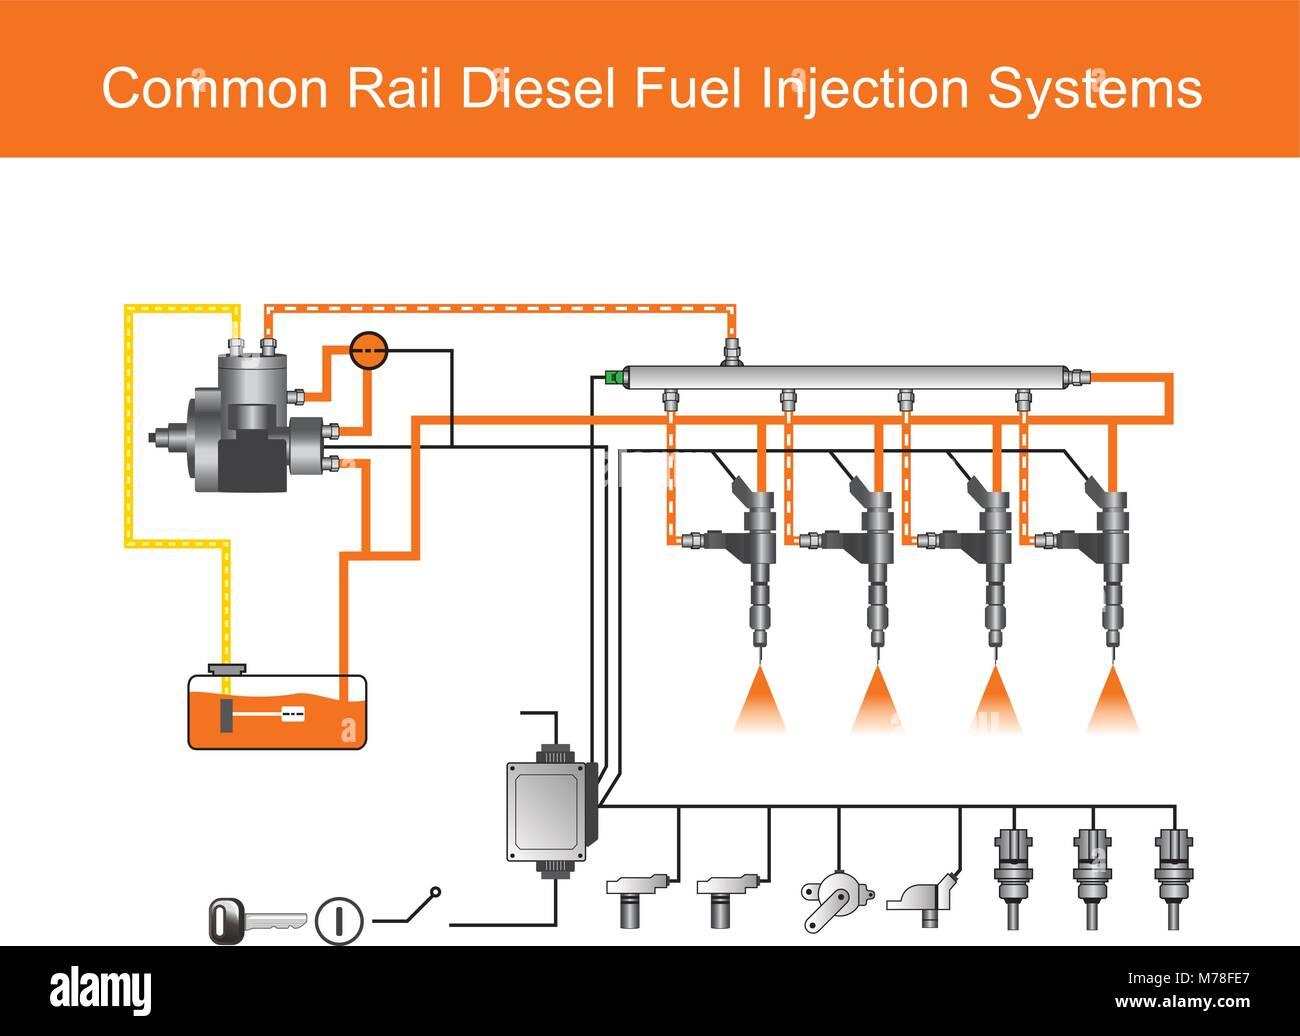 Common rail direct fuel injection is a direct fuel injection system